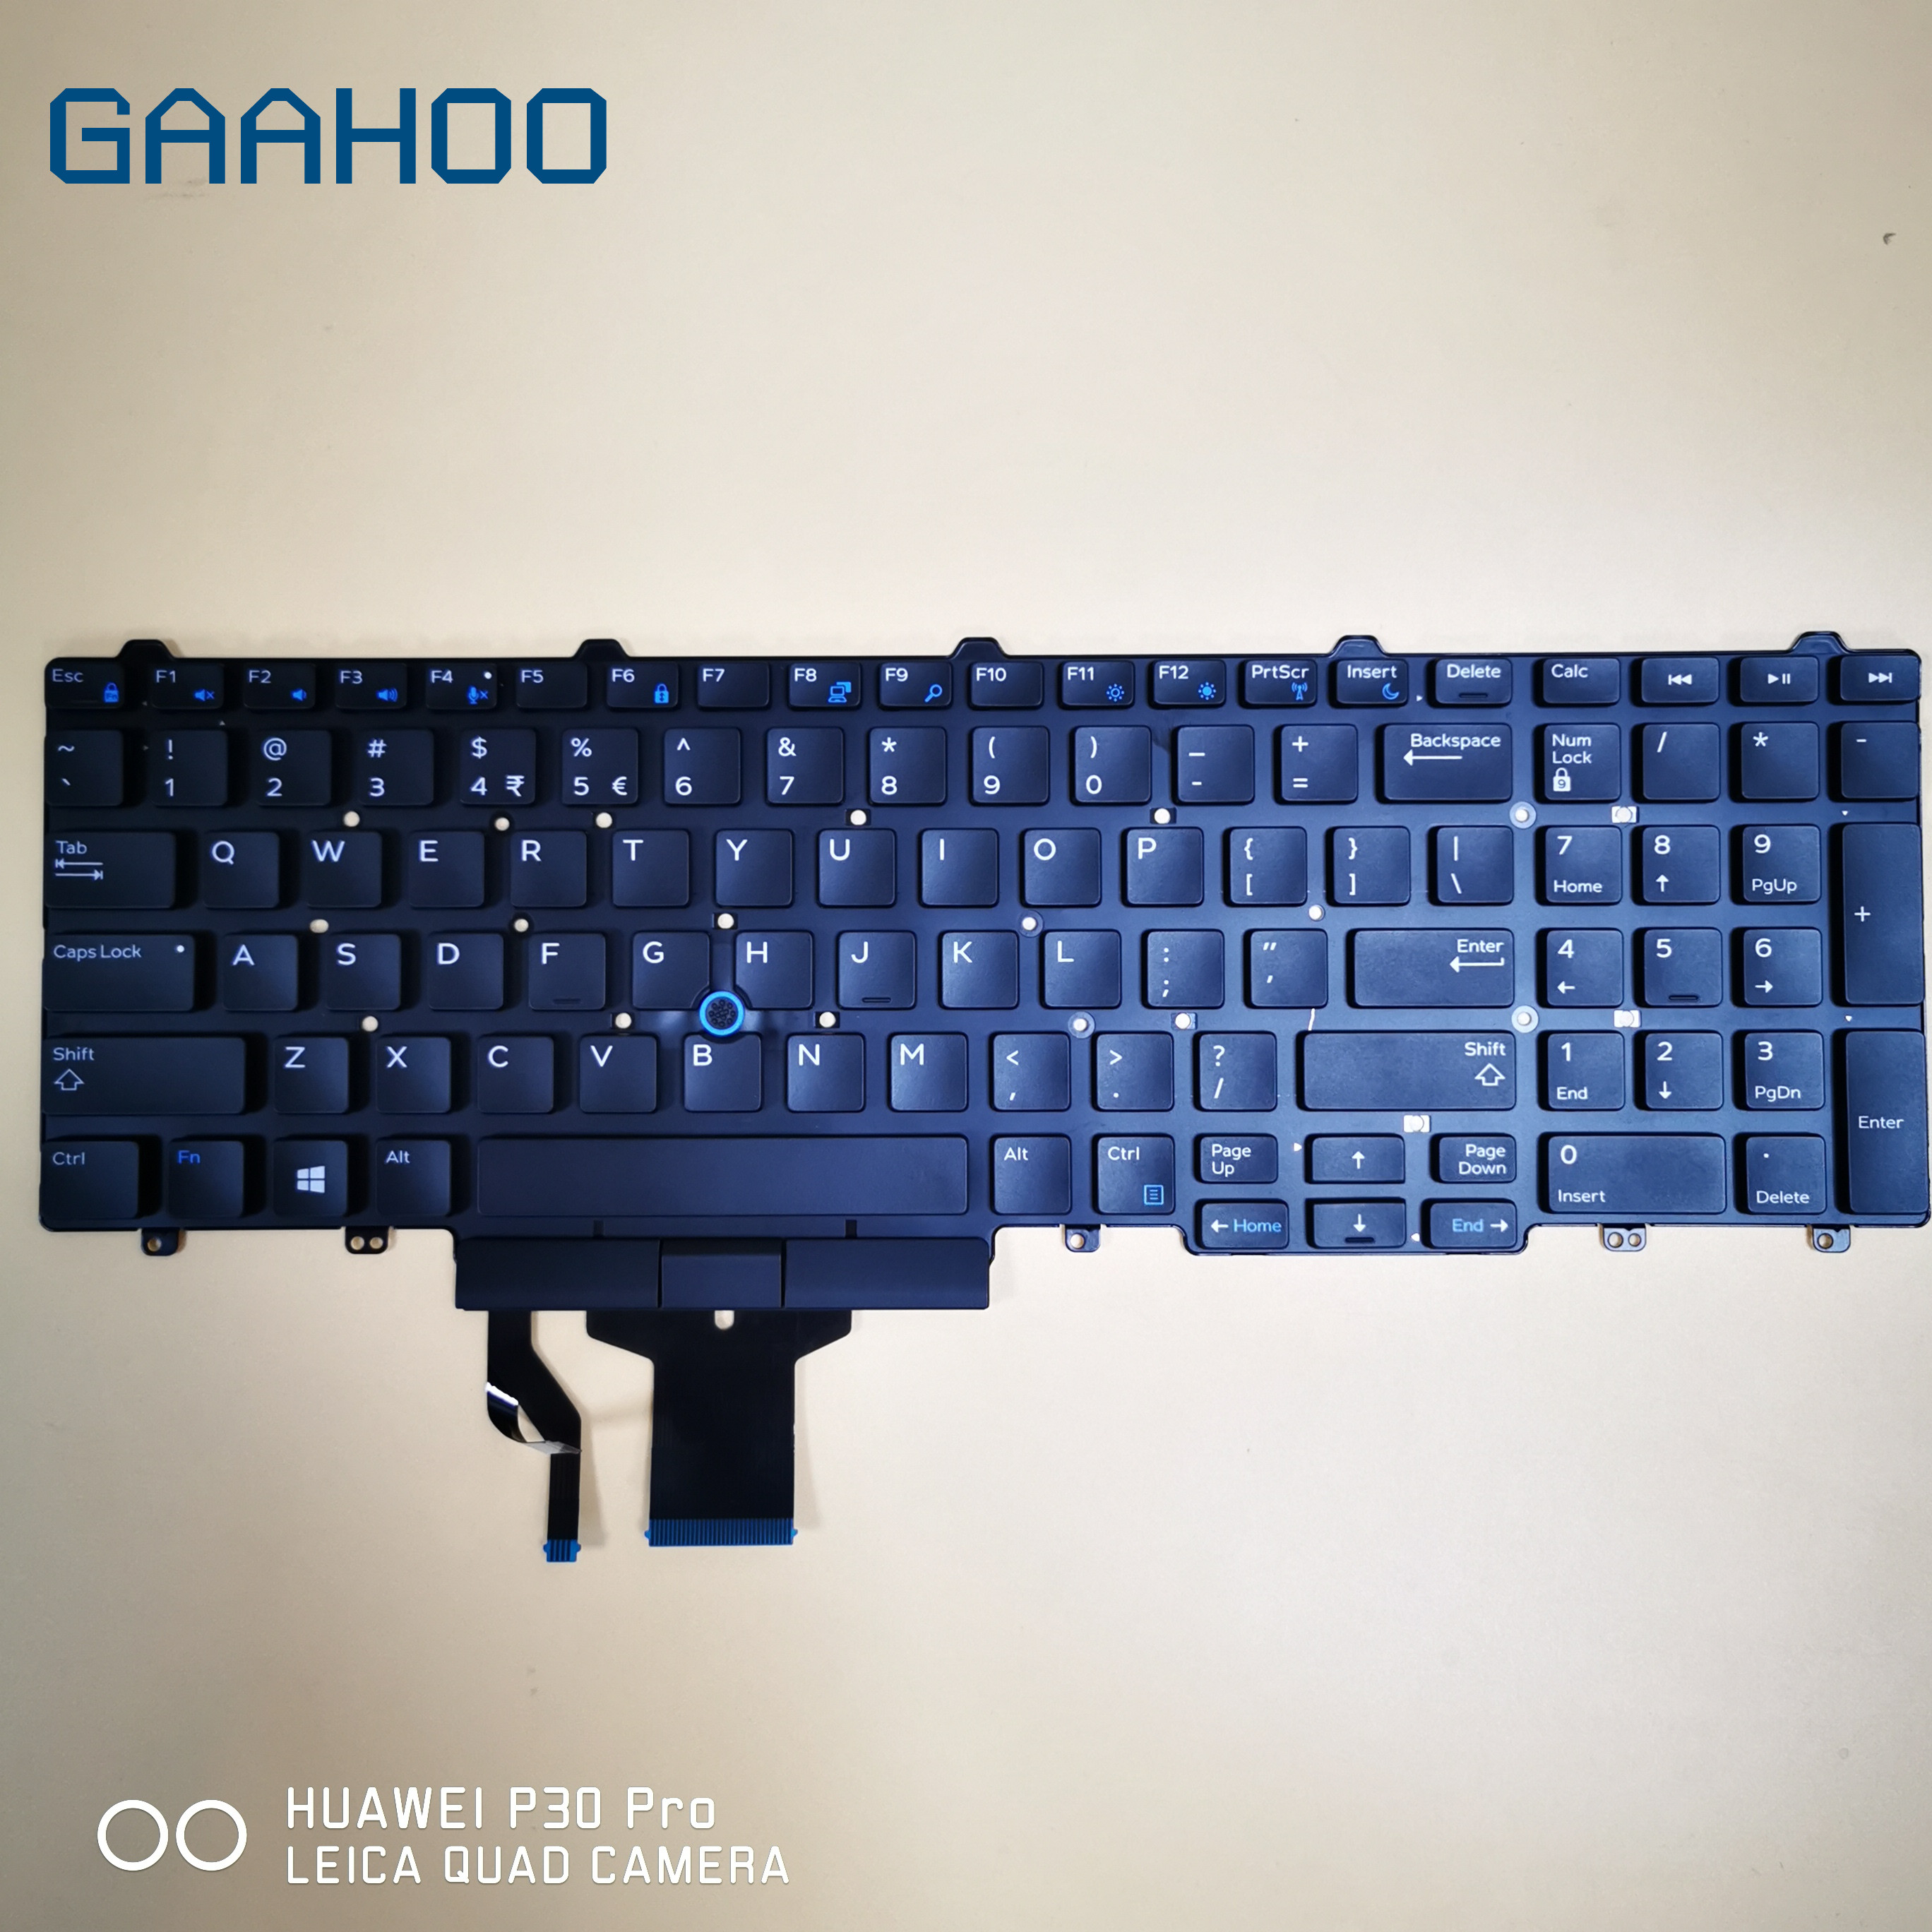 US Keyboard For Dell Latitude 5550 5570 5580 5590 PRECISION 3510 3520 3530 3540 7510 7520 7530 7710 7720 LAPTOP W/ TRUCKPOINT